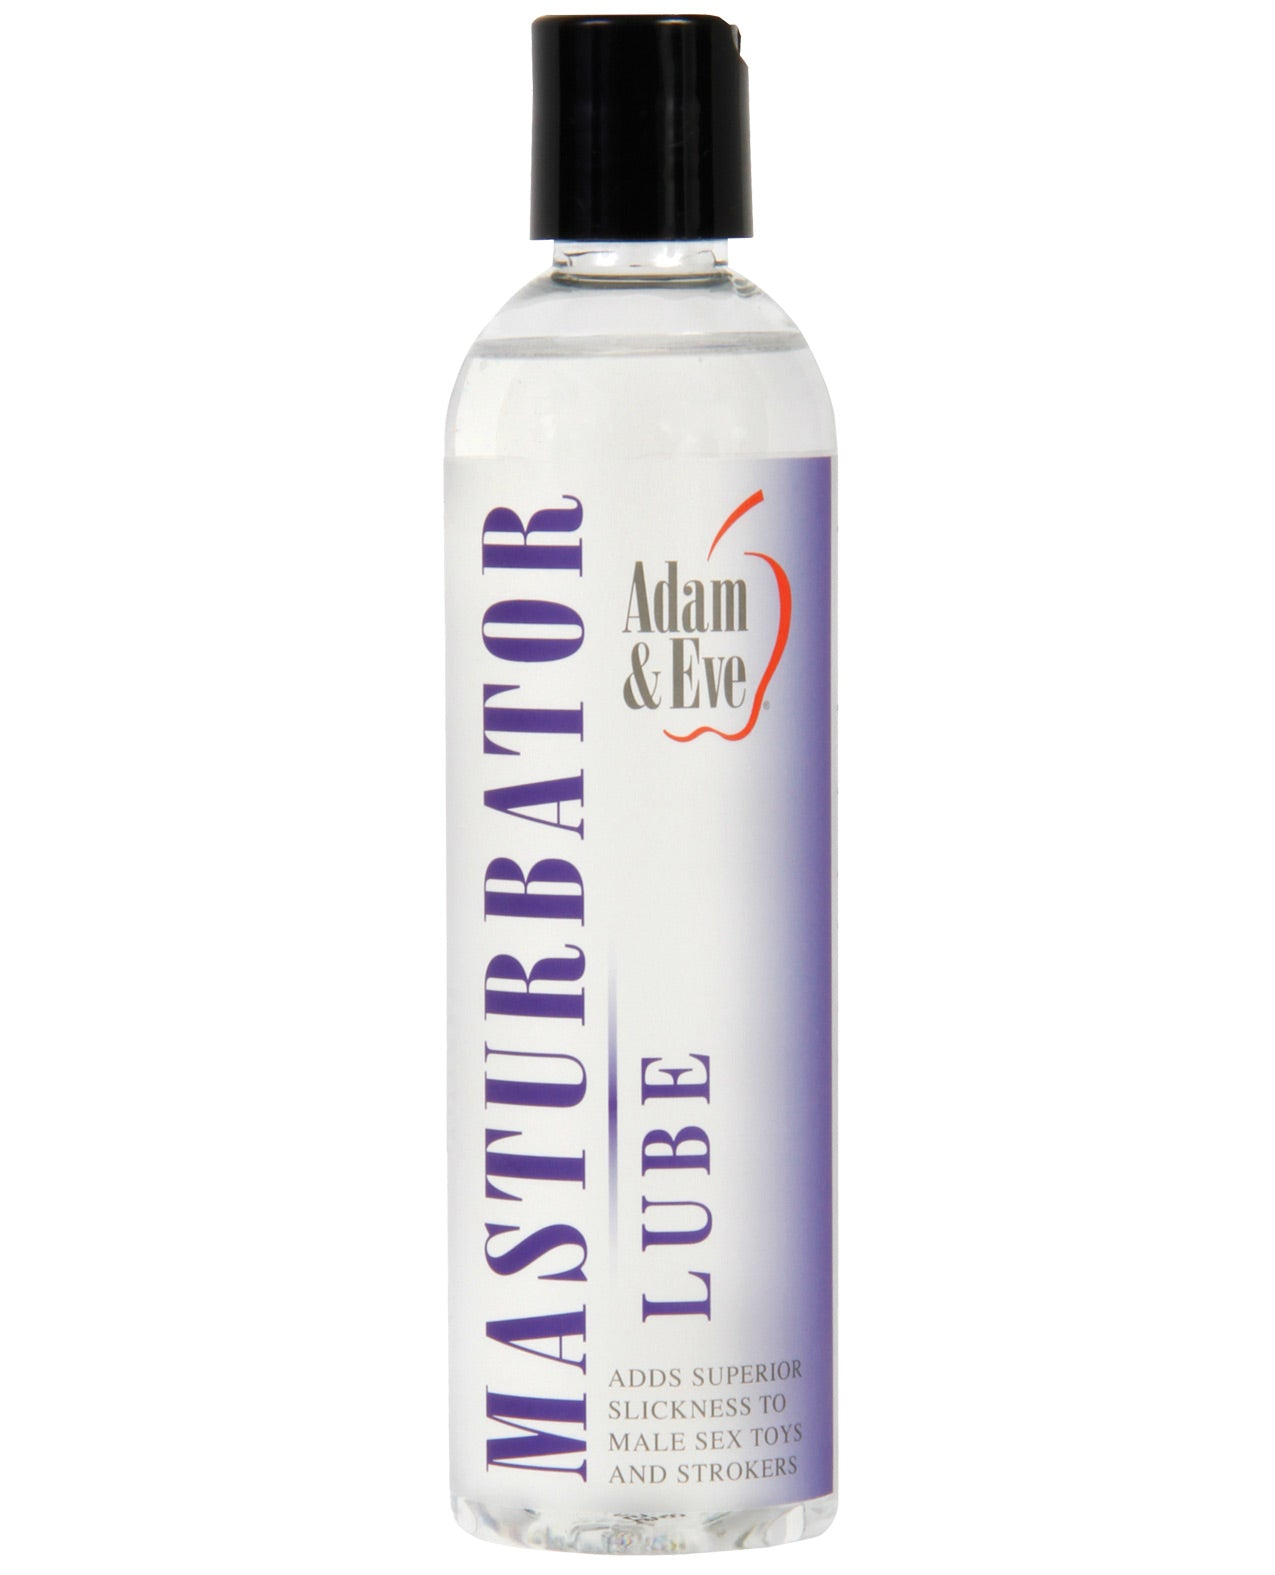 Adam & Eve Masturbator Lube - 8 oz